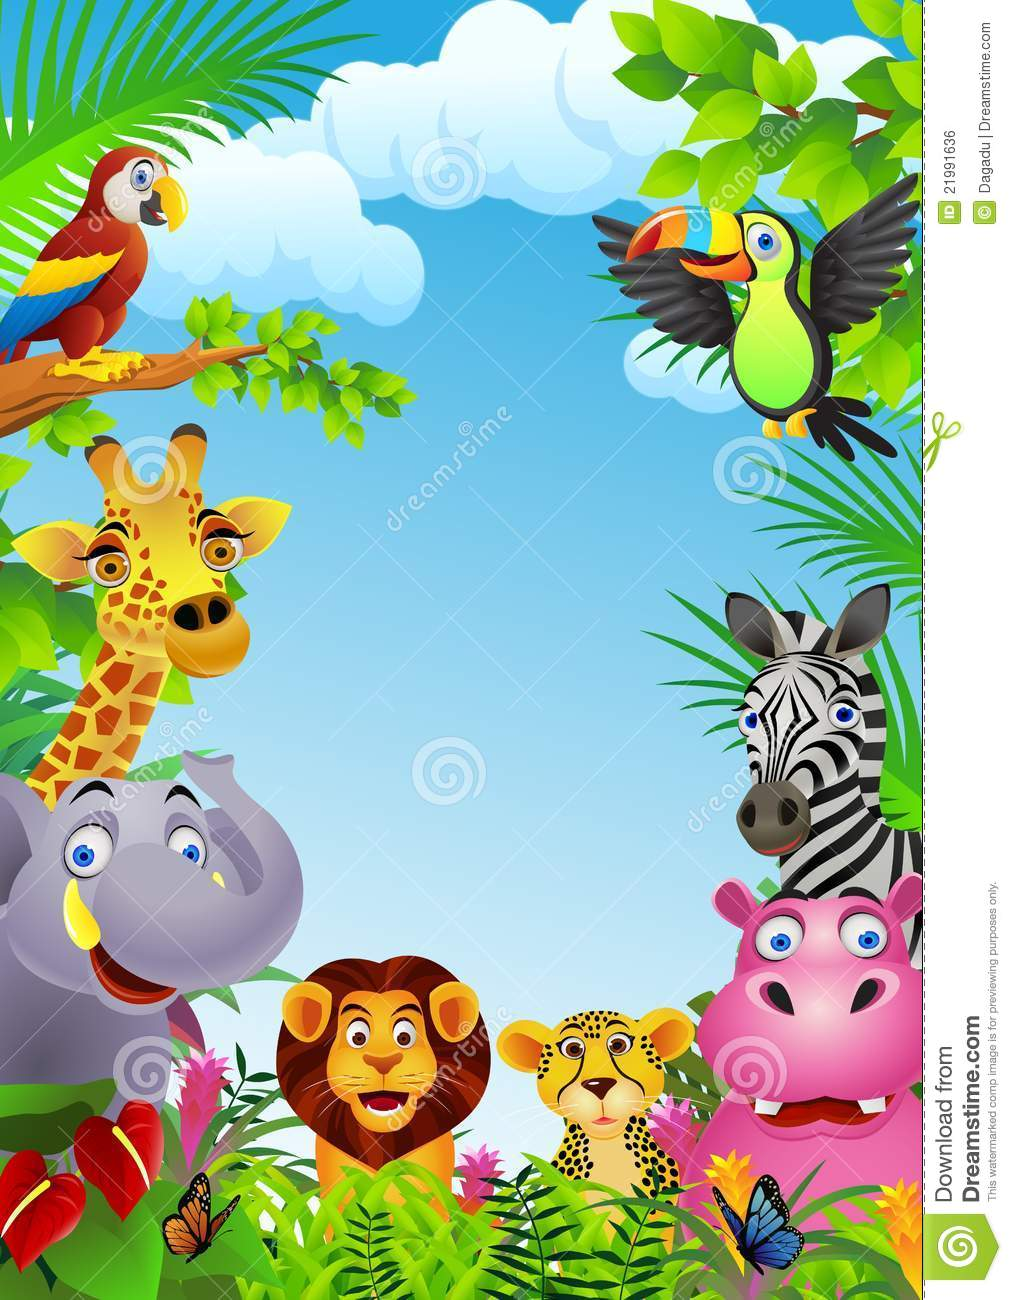 Jungle cartoon animals animal cartoon